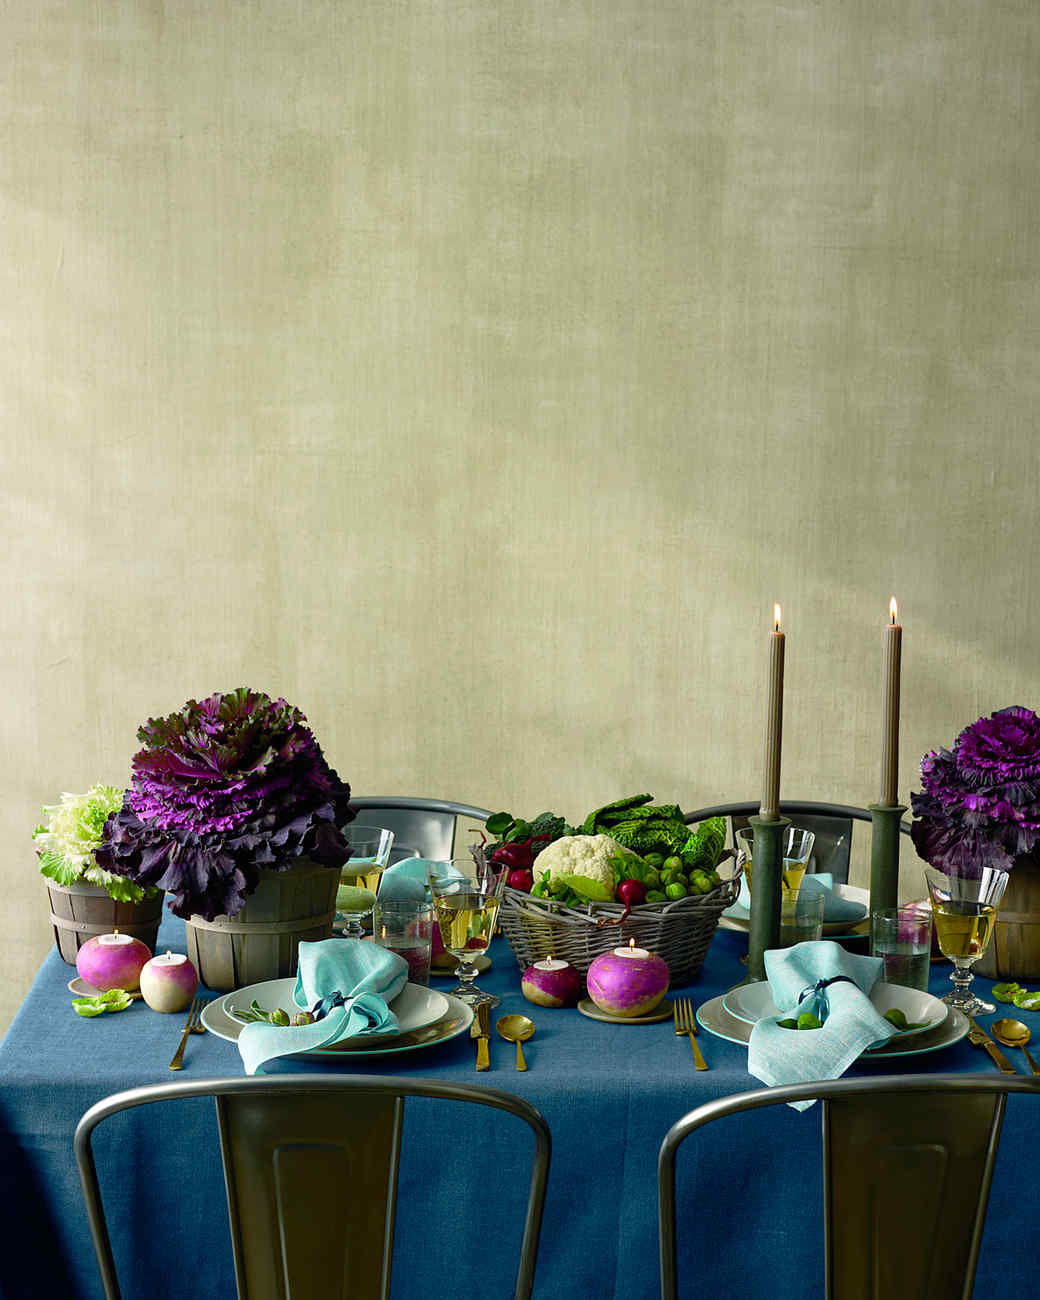 Simple and stylish Thanksgiving table setting idea